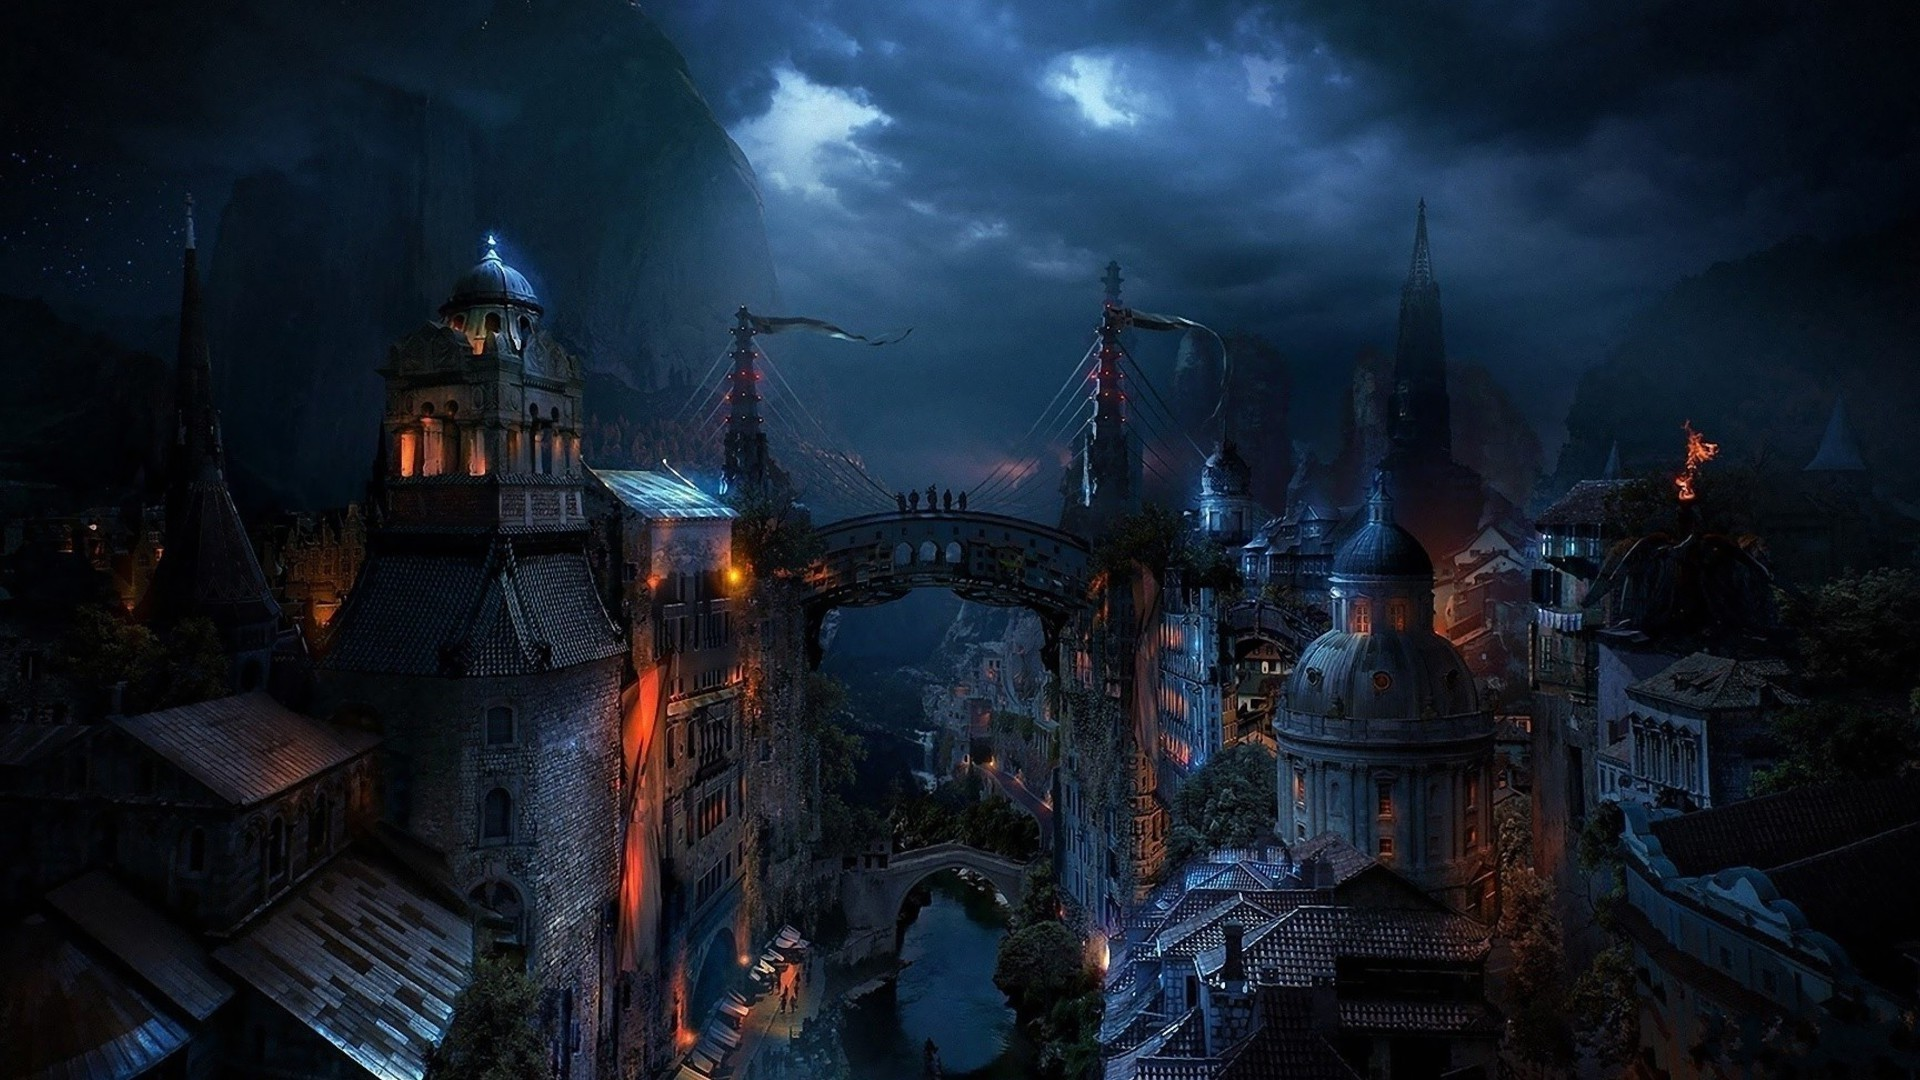 image - dark-medieval-city-fantasy-hd-wallpaper-1920x1080-2069